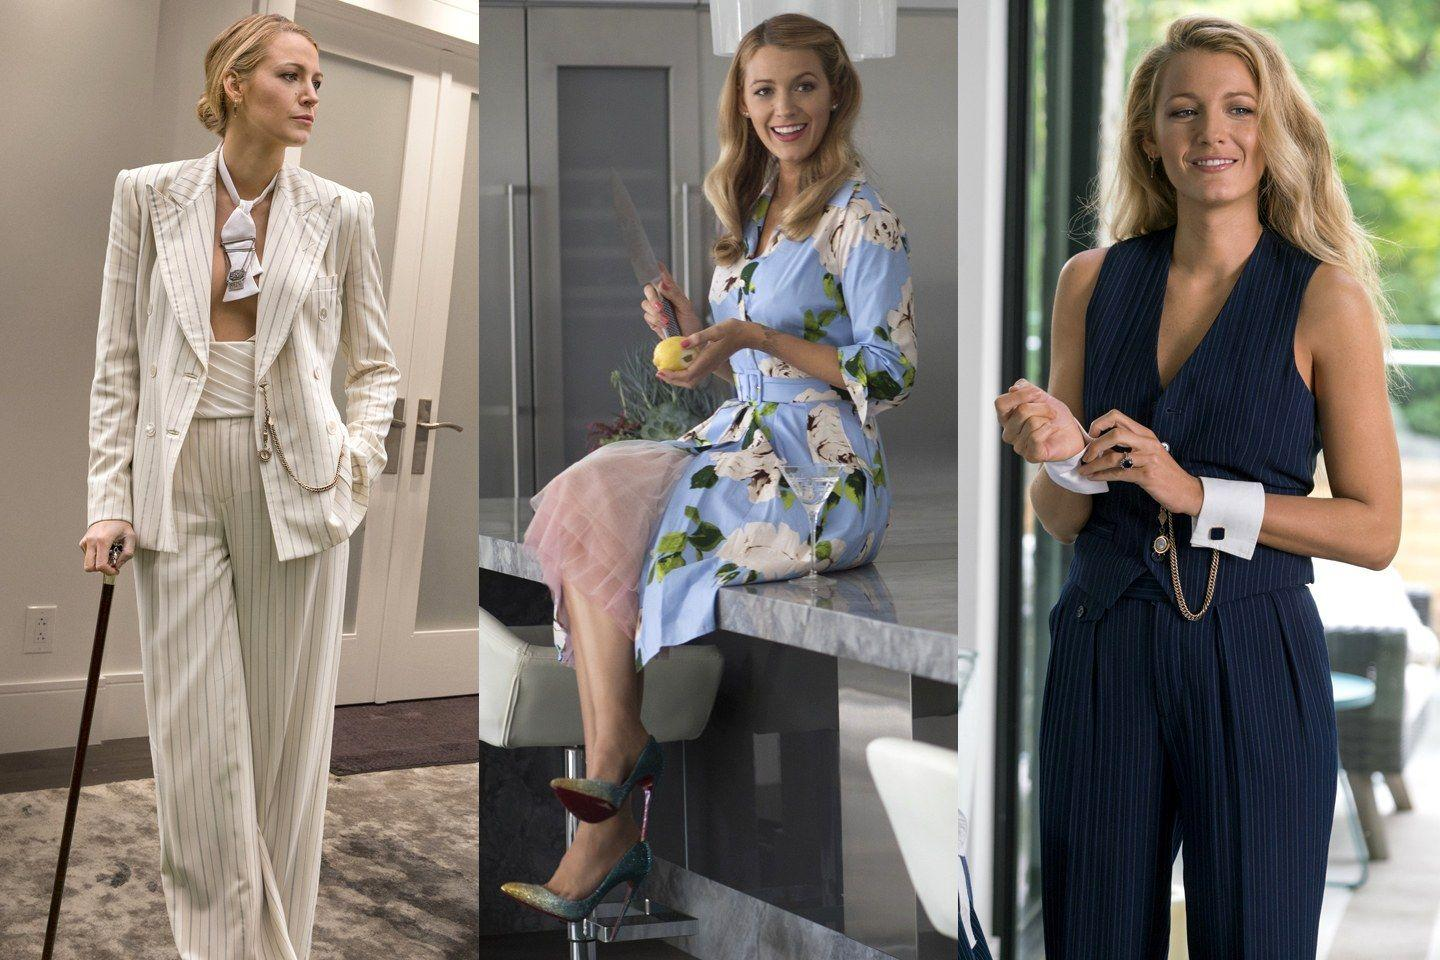 A Simple Favor Halloween Costume: Dress Like Blake Lively | Blake ...